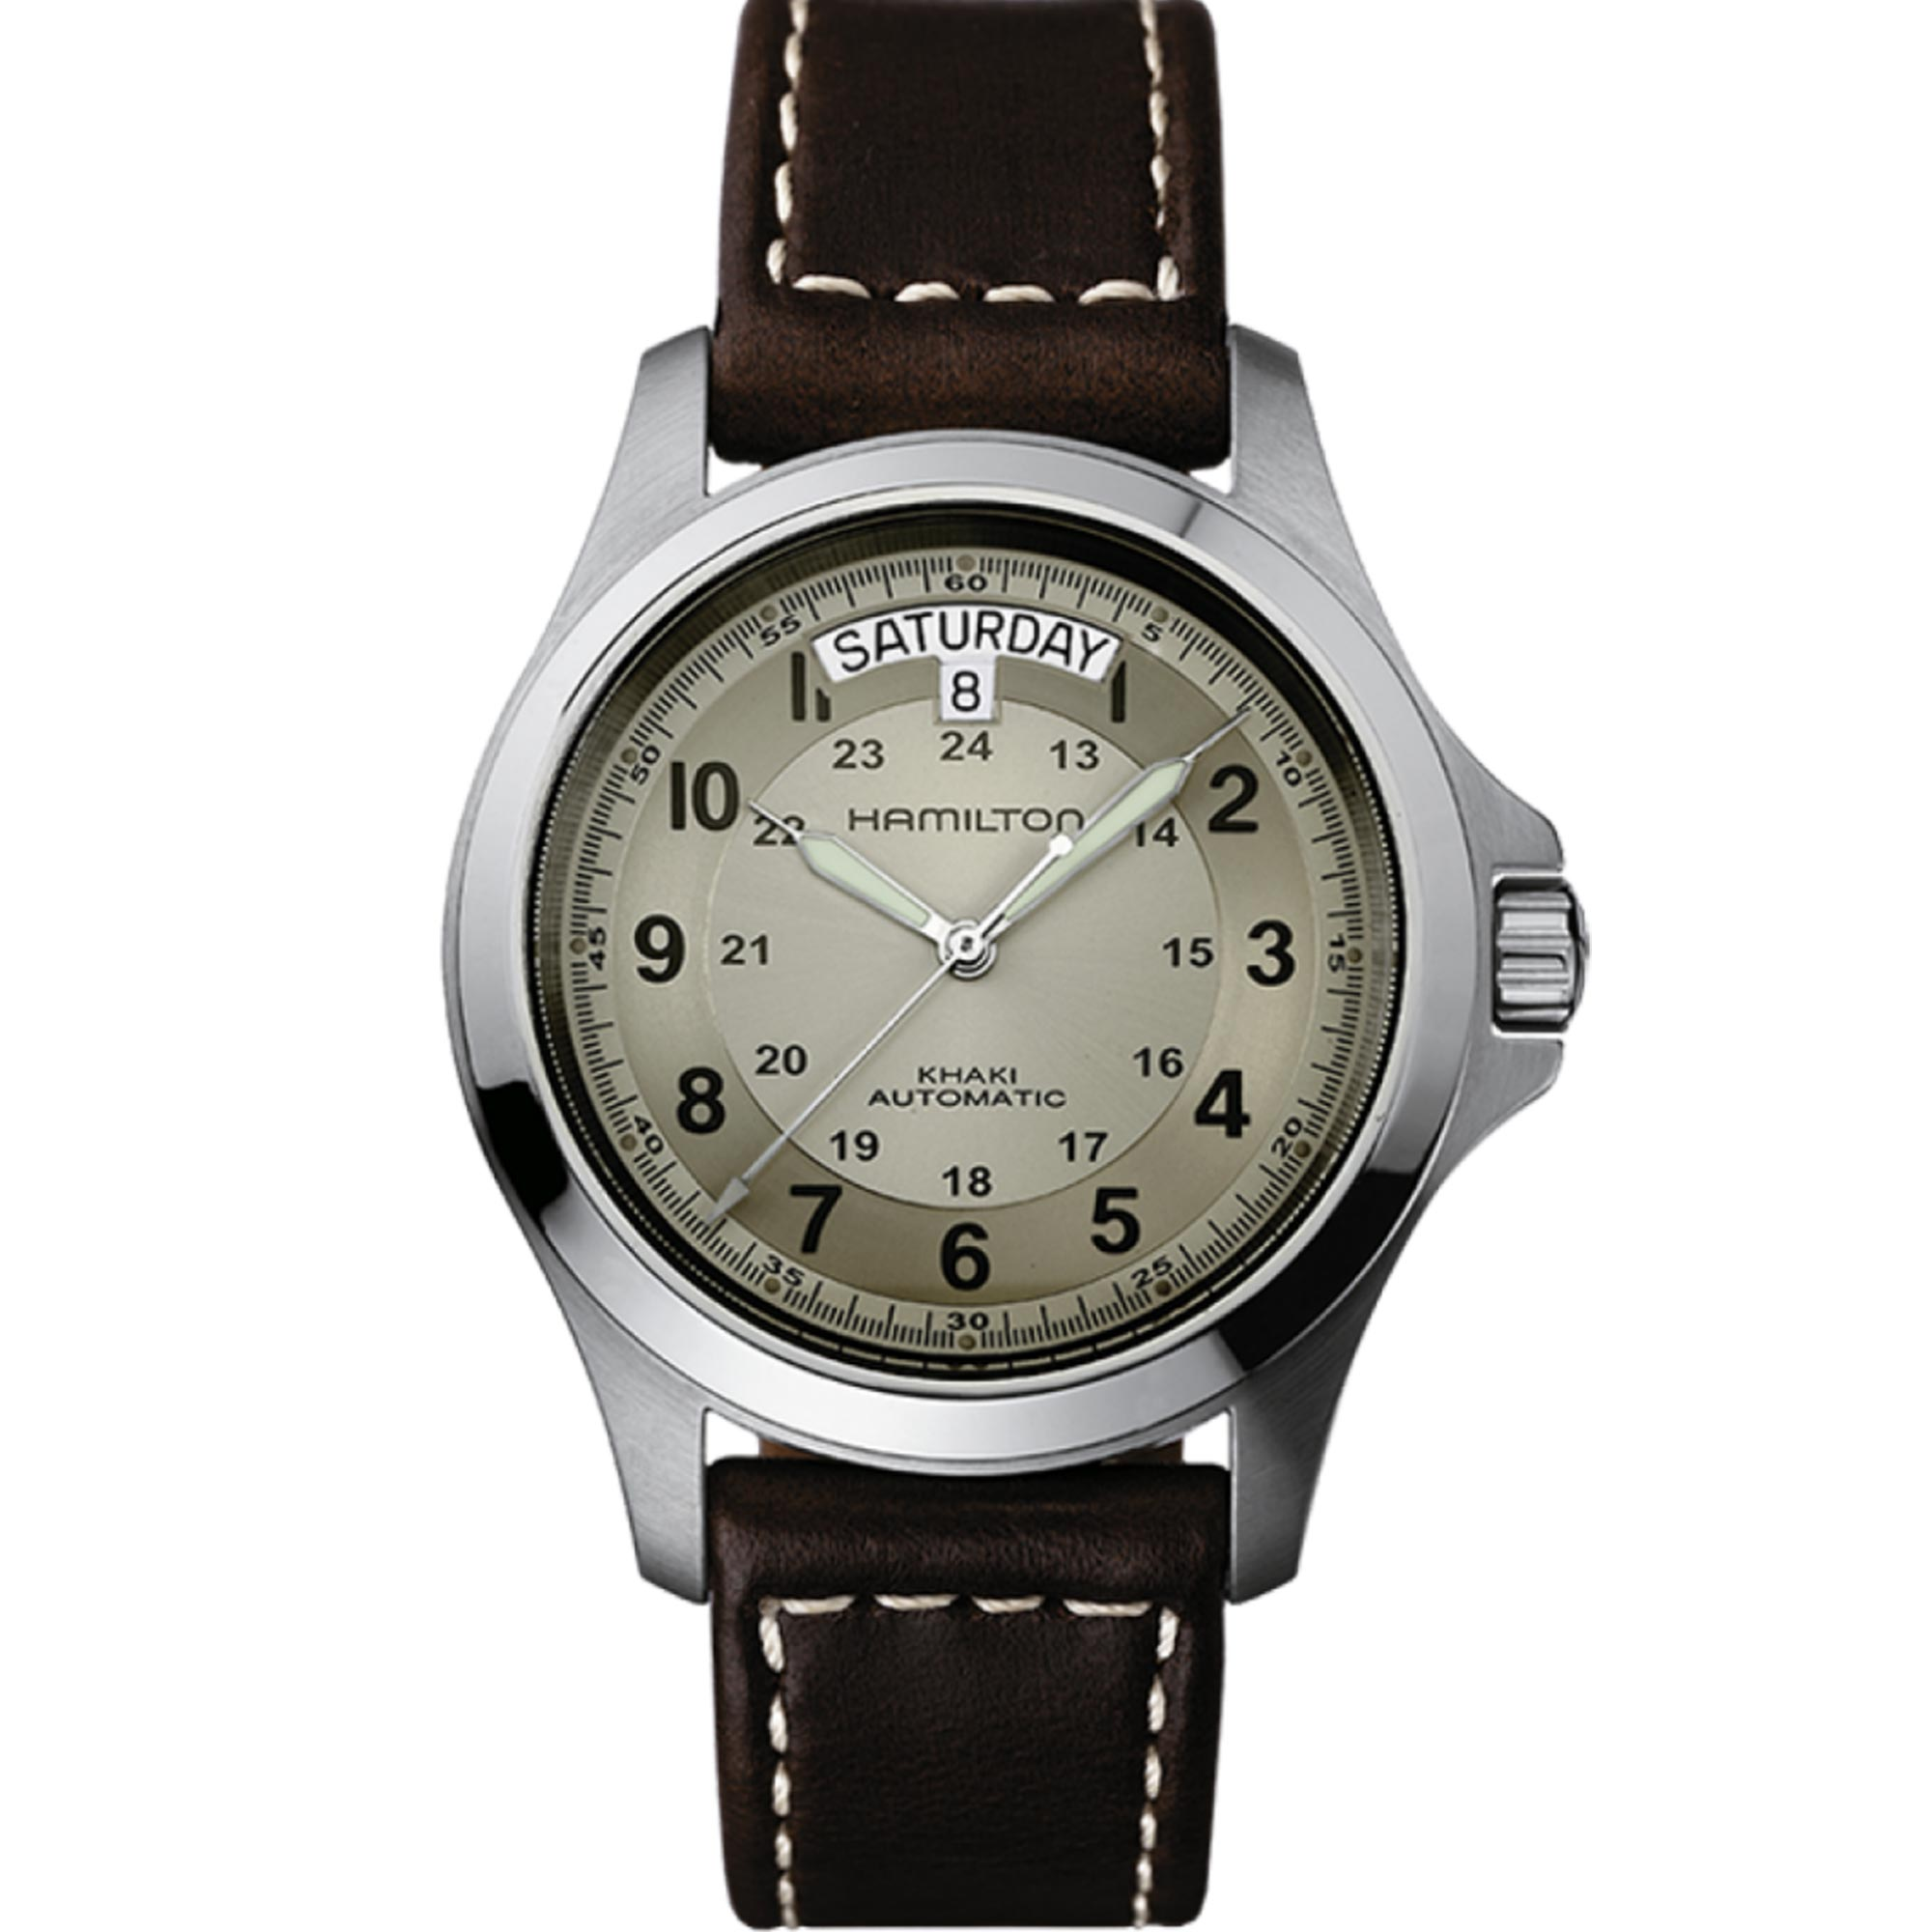 Hamilton Khaki Field Pioneer King Automatic Beige Dial Brown Leather Strap Men's Watch H64455523 RRP £430